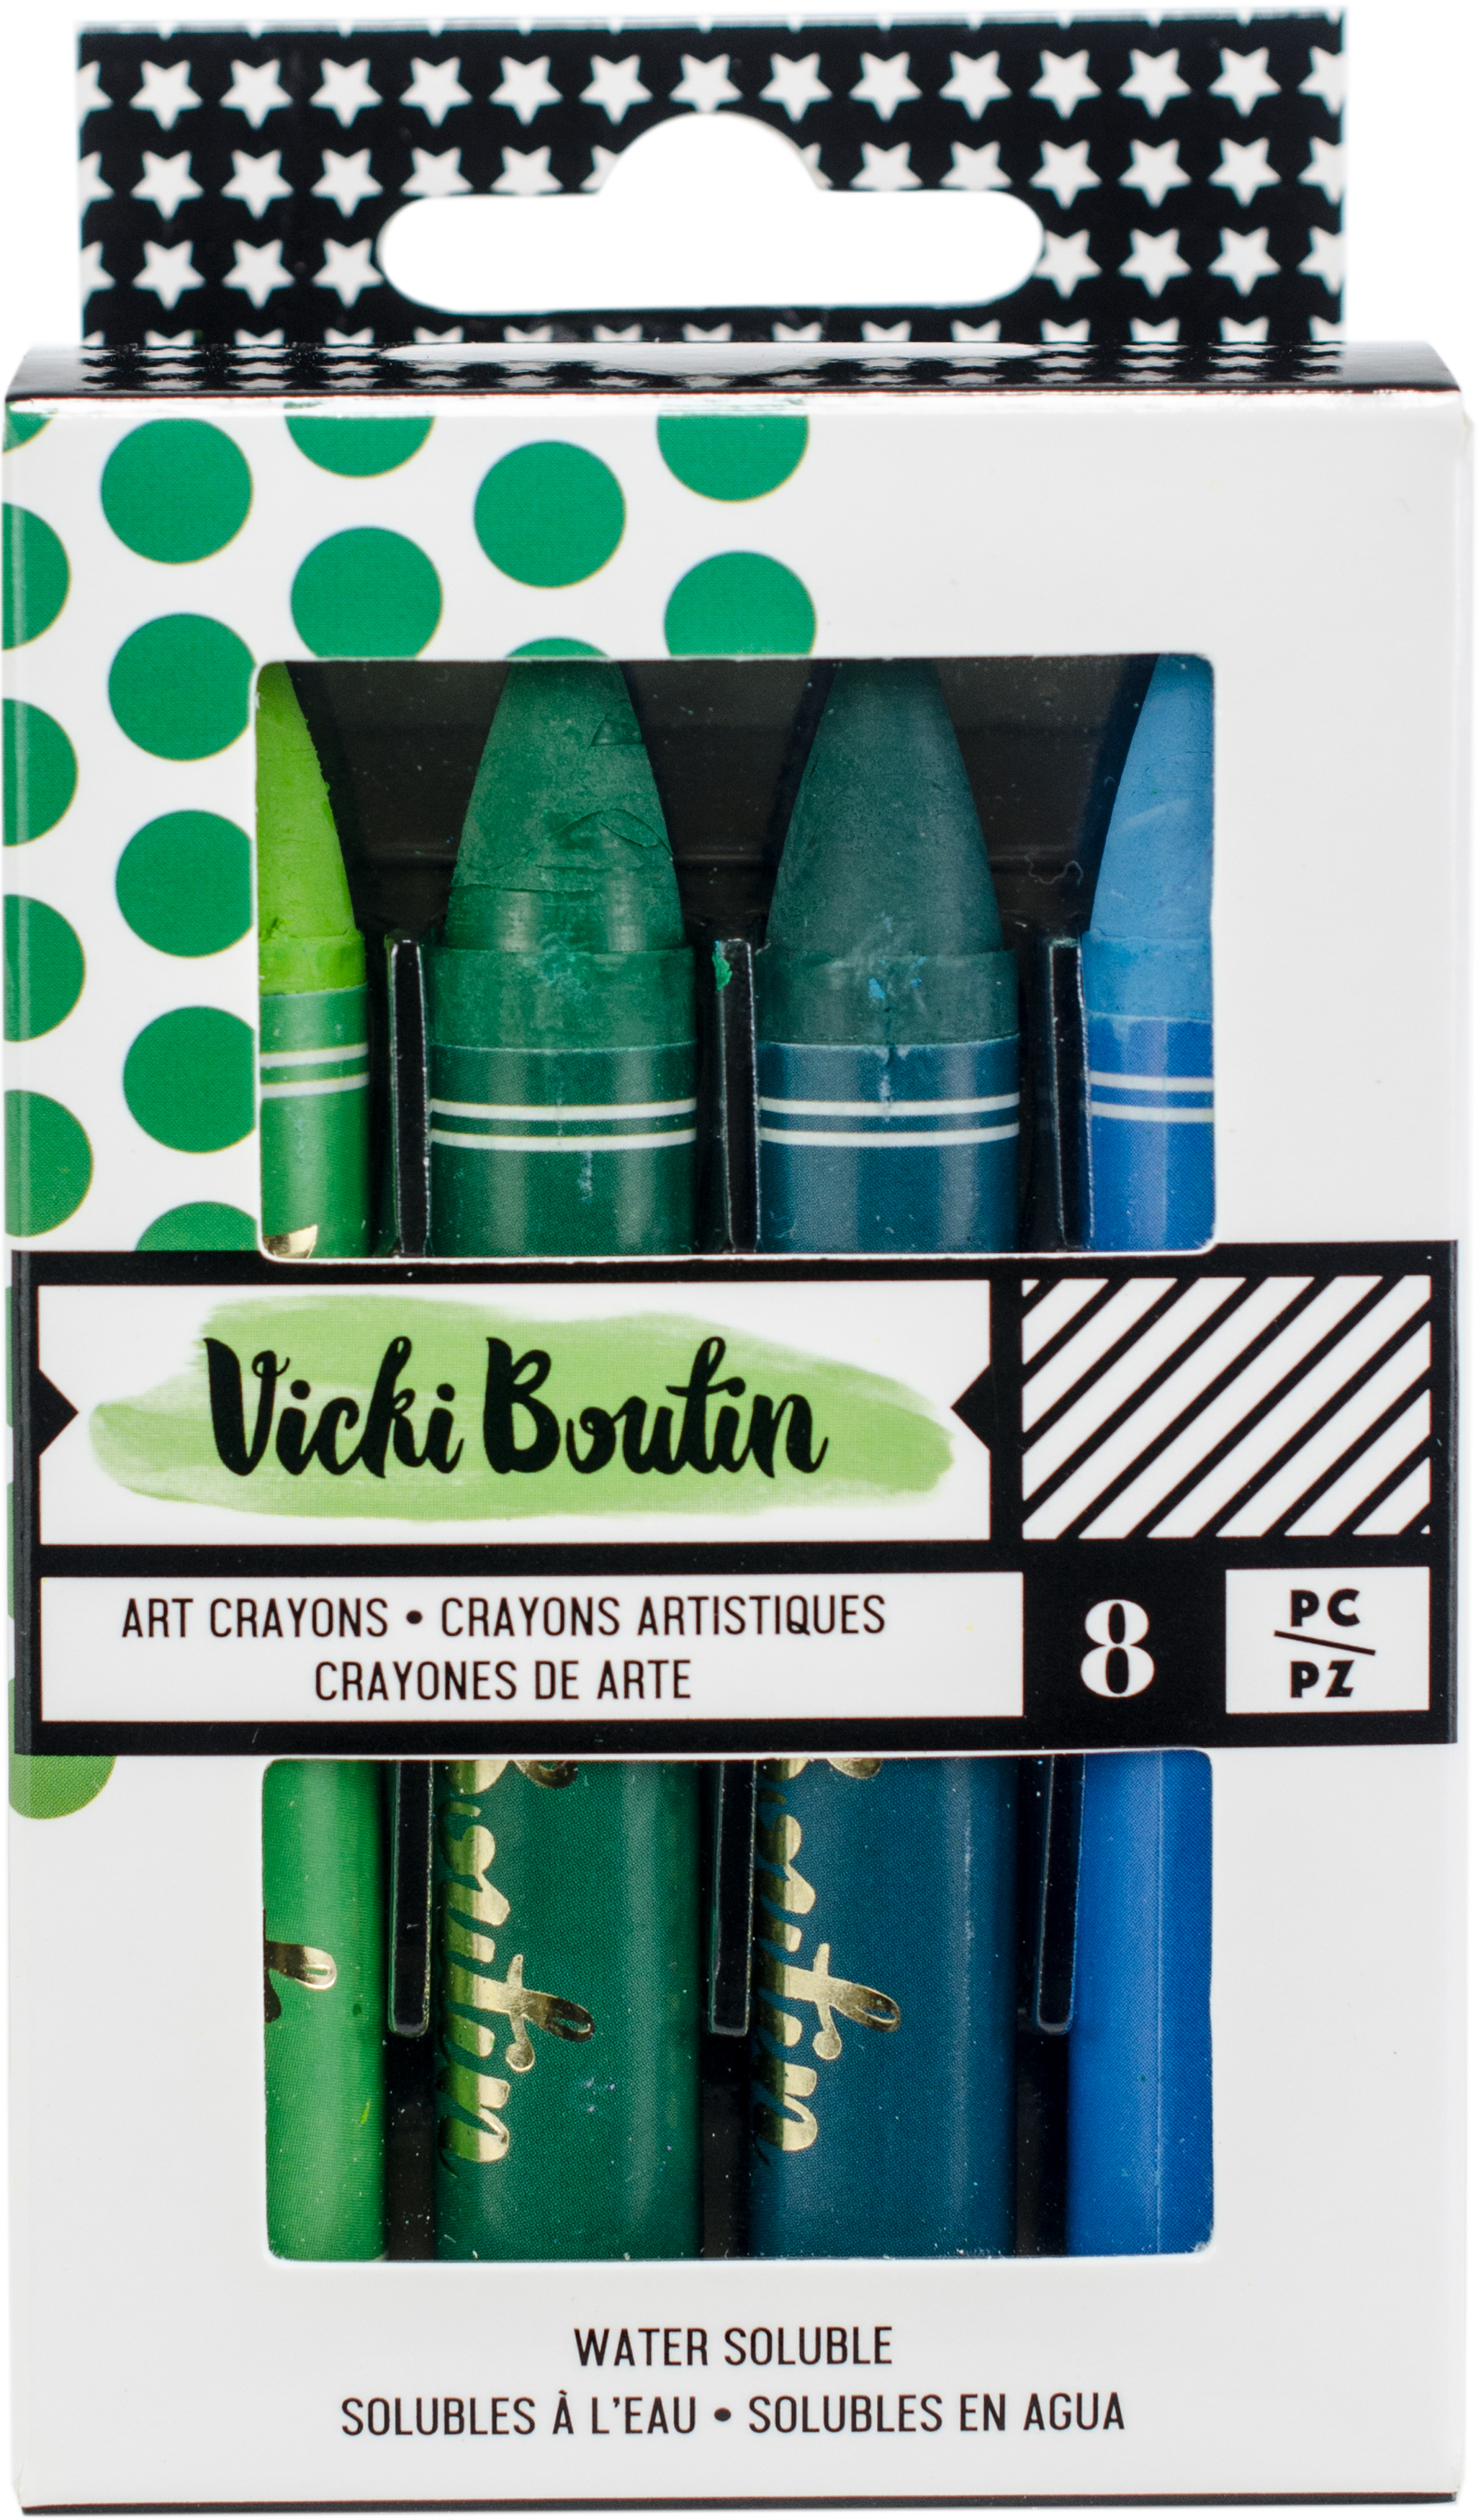 Vicki Boutin Mixed Media Oil Pastel Art Crayons 8/Pkg-#2 - Cool